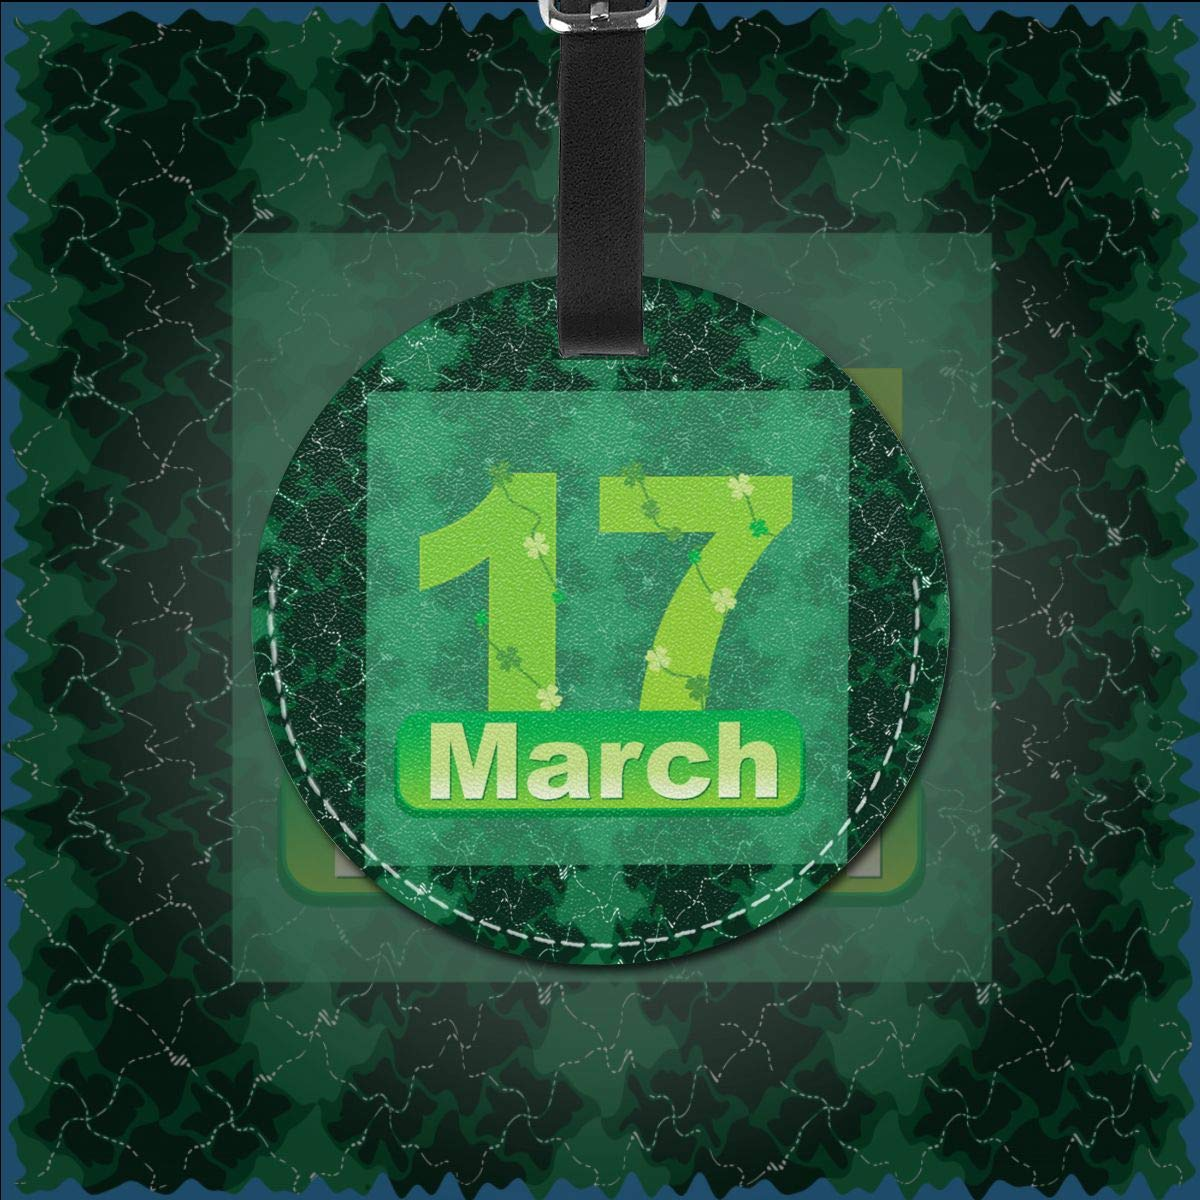 1pcs,2pcs,4pcs St Patricks Day March 17 Lucky To Have You Pu Leather Double Sides Print Round Luggage Tag Mutilple Packs